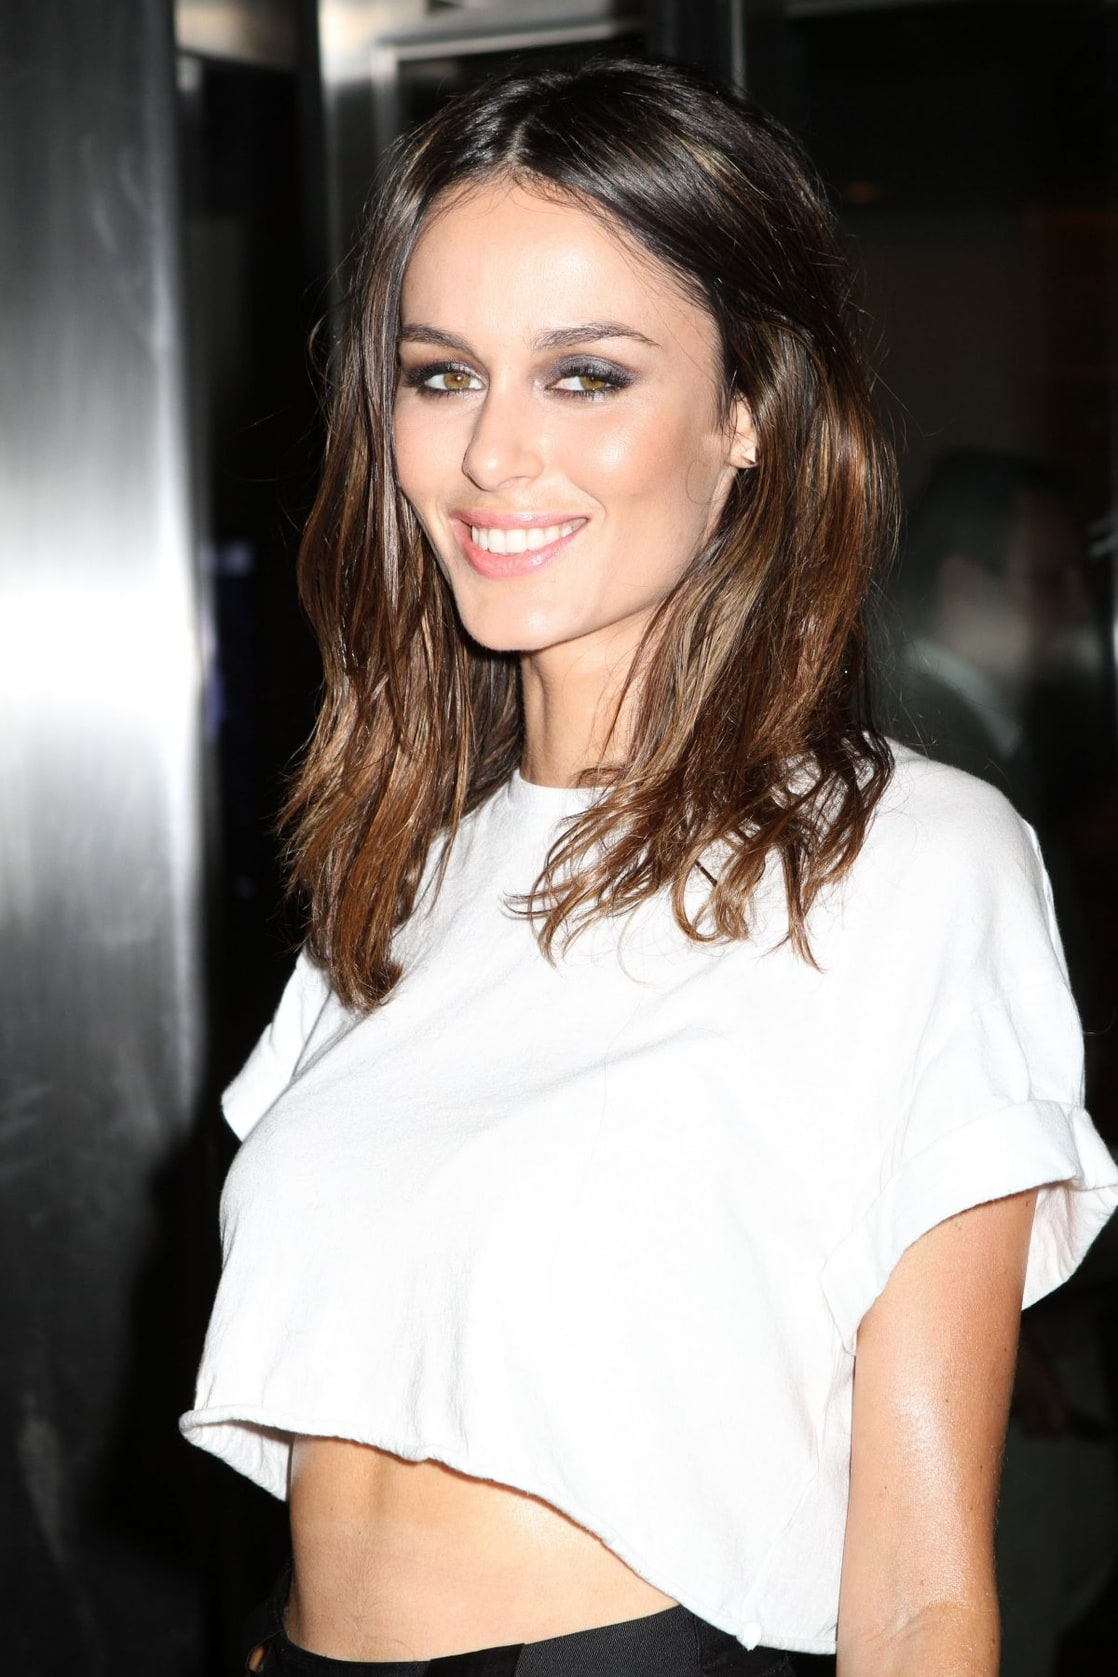 Picture Of Nicole Trunfio